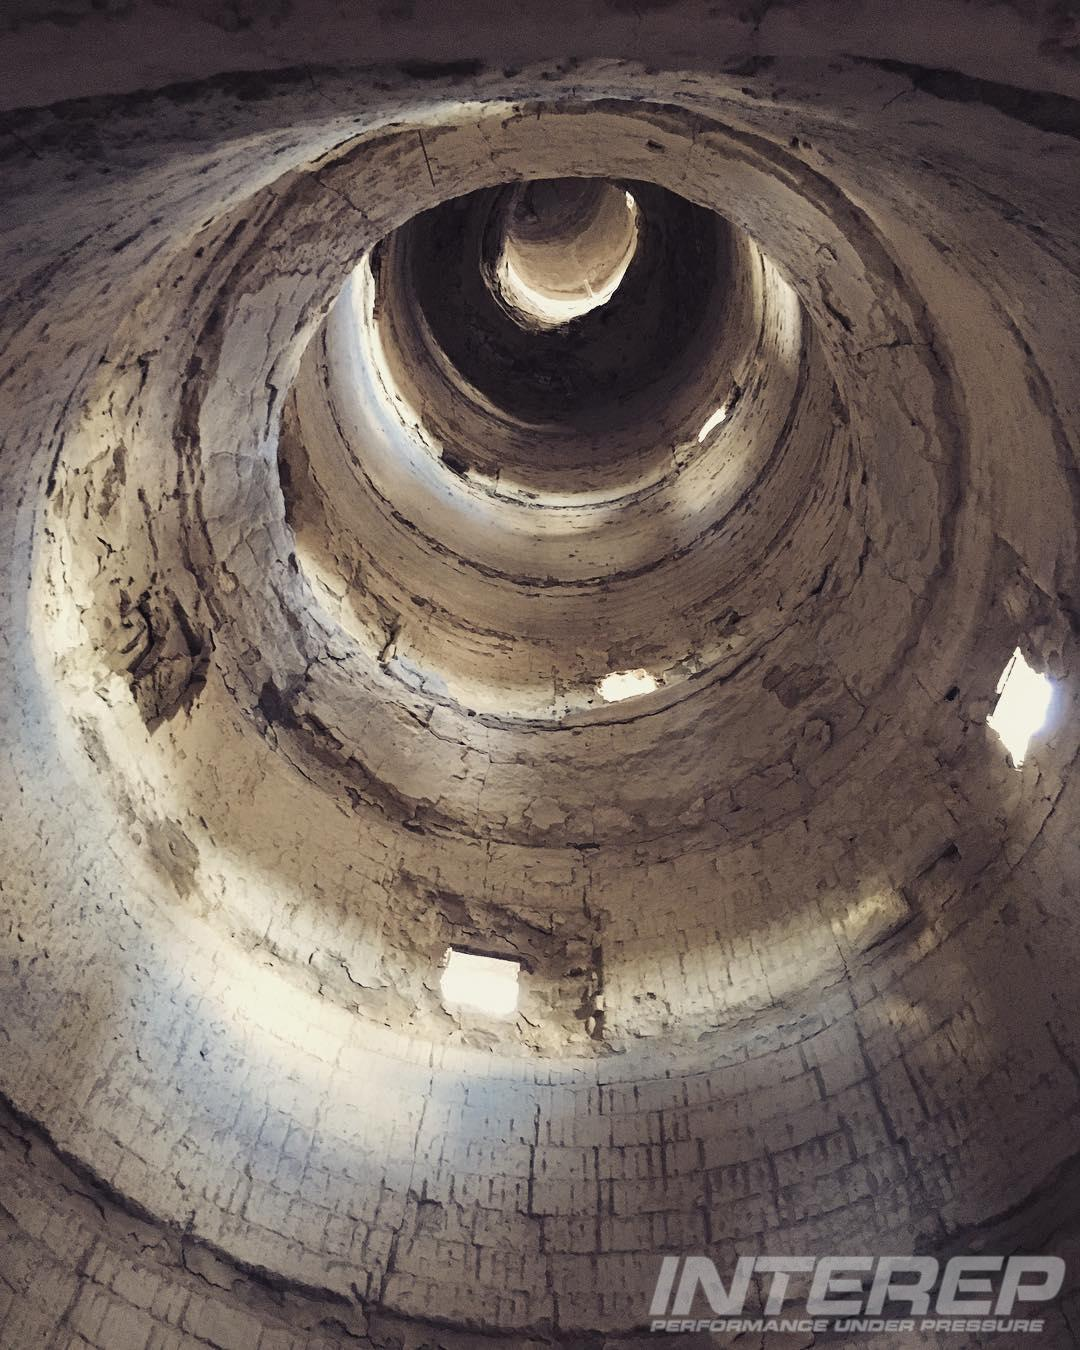 The inside of a pre-calciner (preheater) tower at a cement plant. In this system the hot combustion gasses from the kiln are passed up through the falling raw meal in a series of cyclones. The average preheater typically produces a hot feed that is 20% calcined when it enters the kiln, increasing the clinker output of the plant. Watch out for stainless steel that exhibits signs of chloride stress corrosion cracking on your preheater tower. Salts in the raw mix are often evaporated in the kiln and re-condense on cool points further upstream in the form of sodium chloride or potassium chloride.